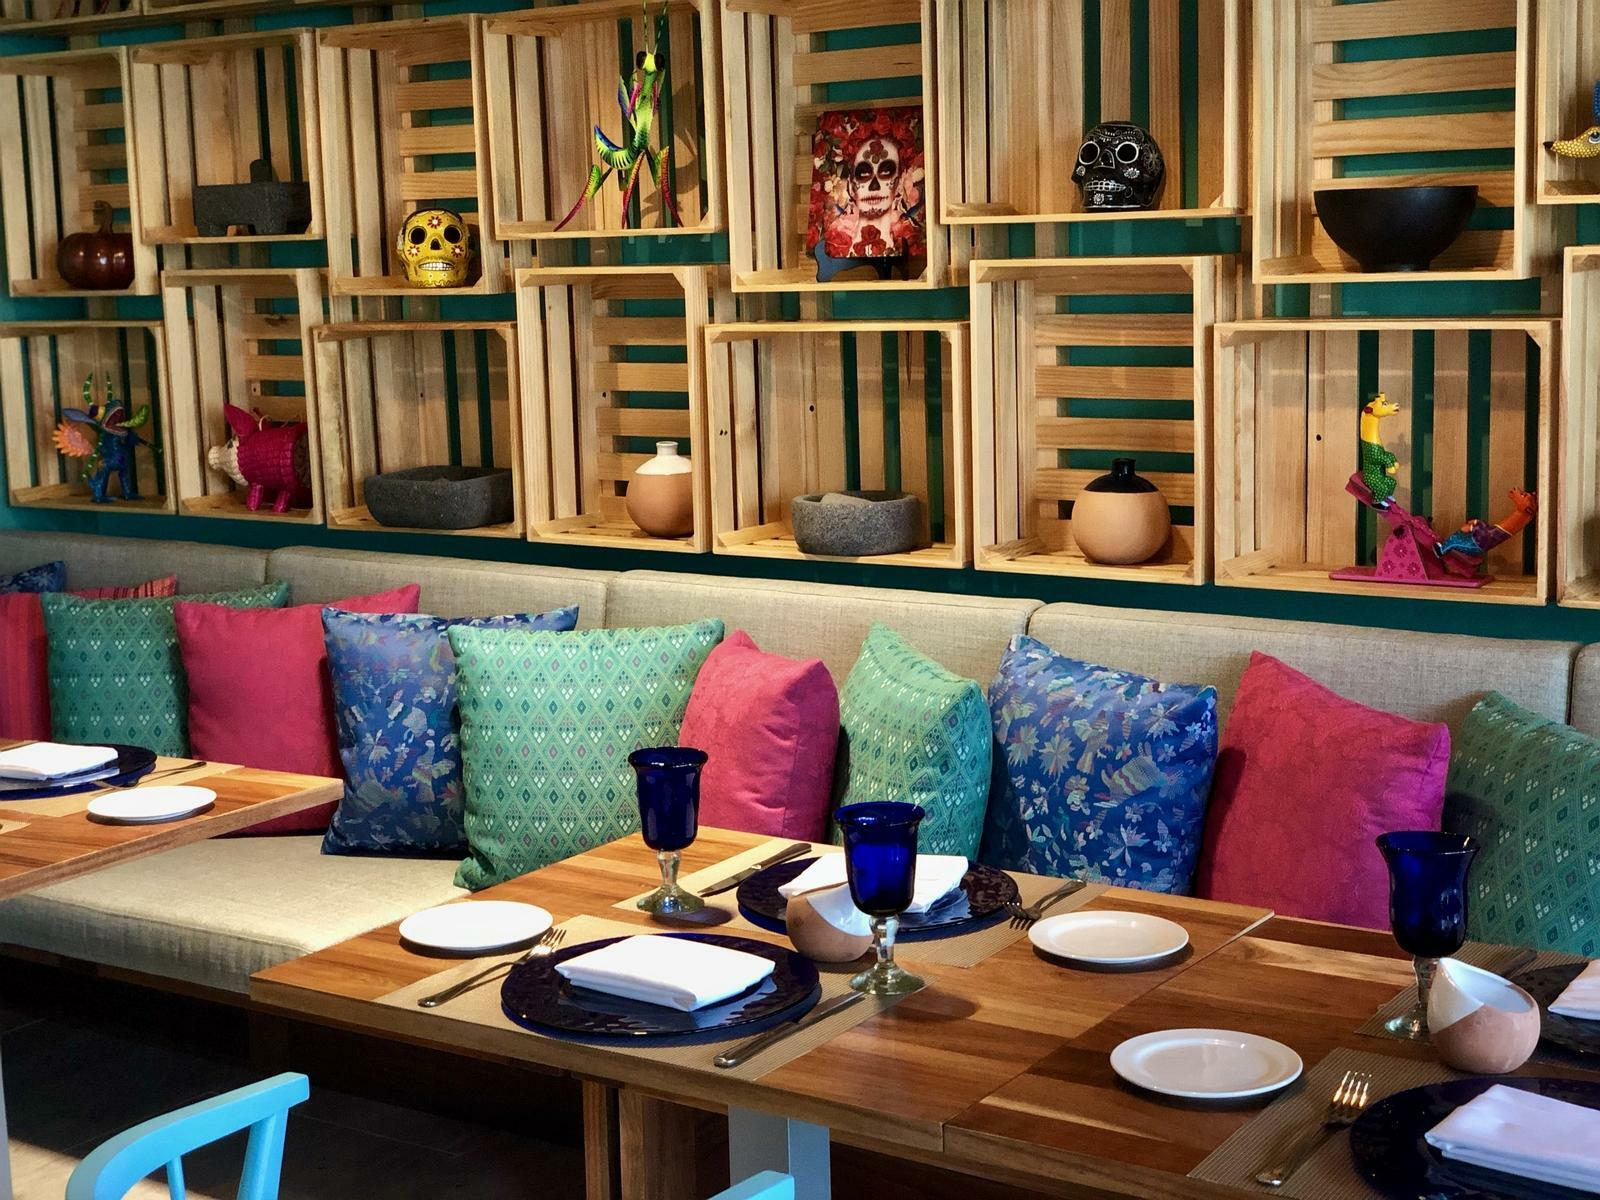 dining booth with colorful pillows and wall accessories